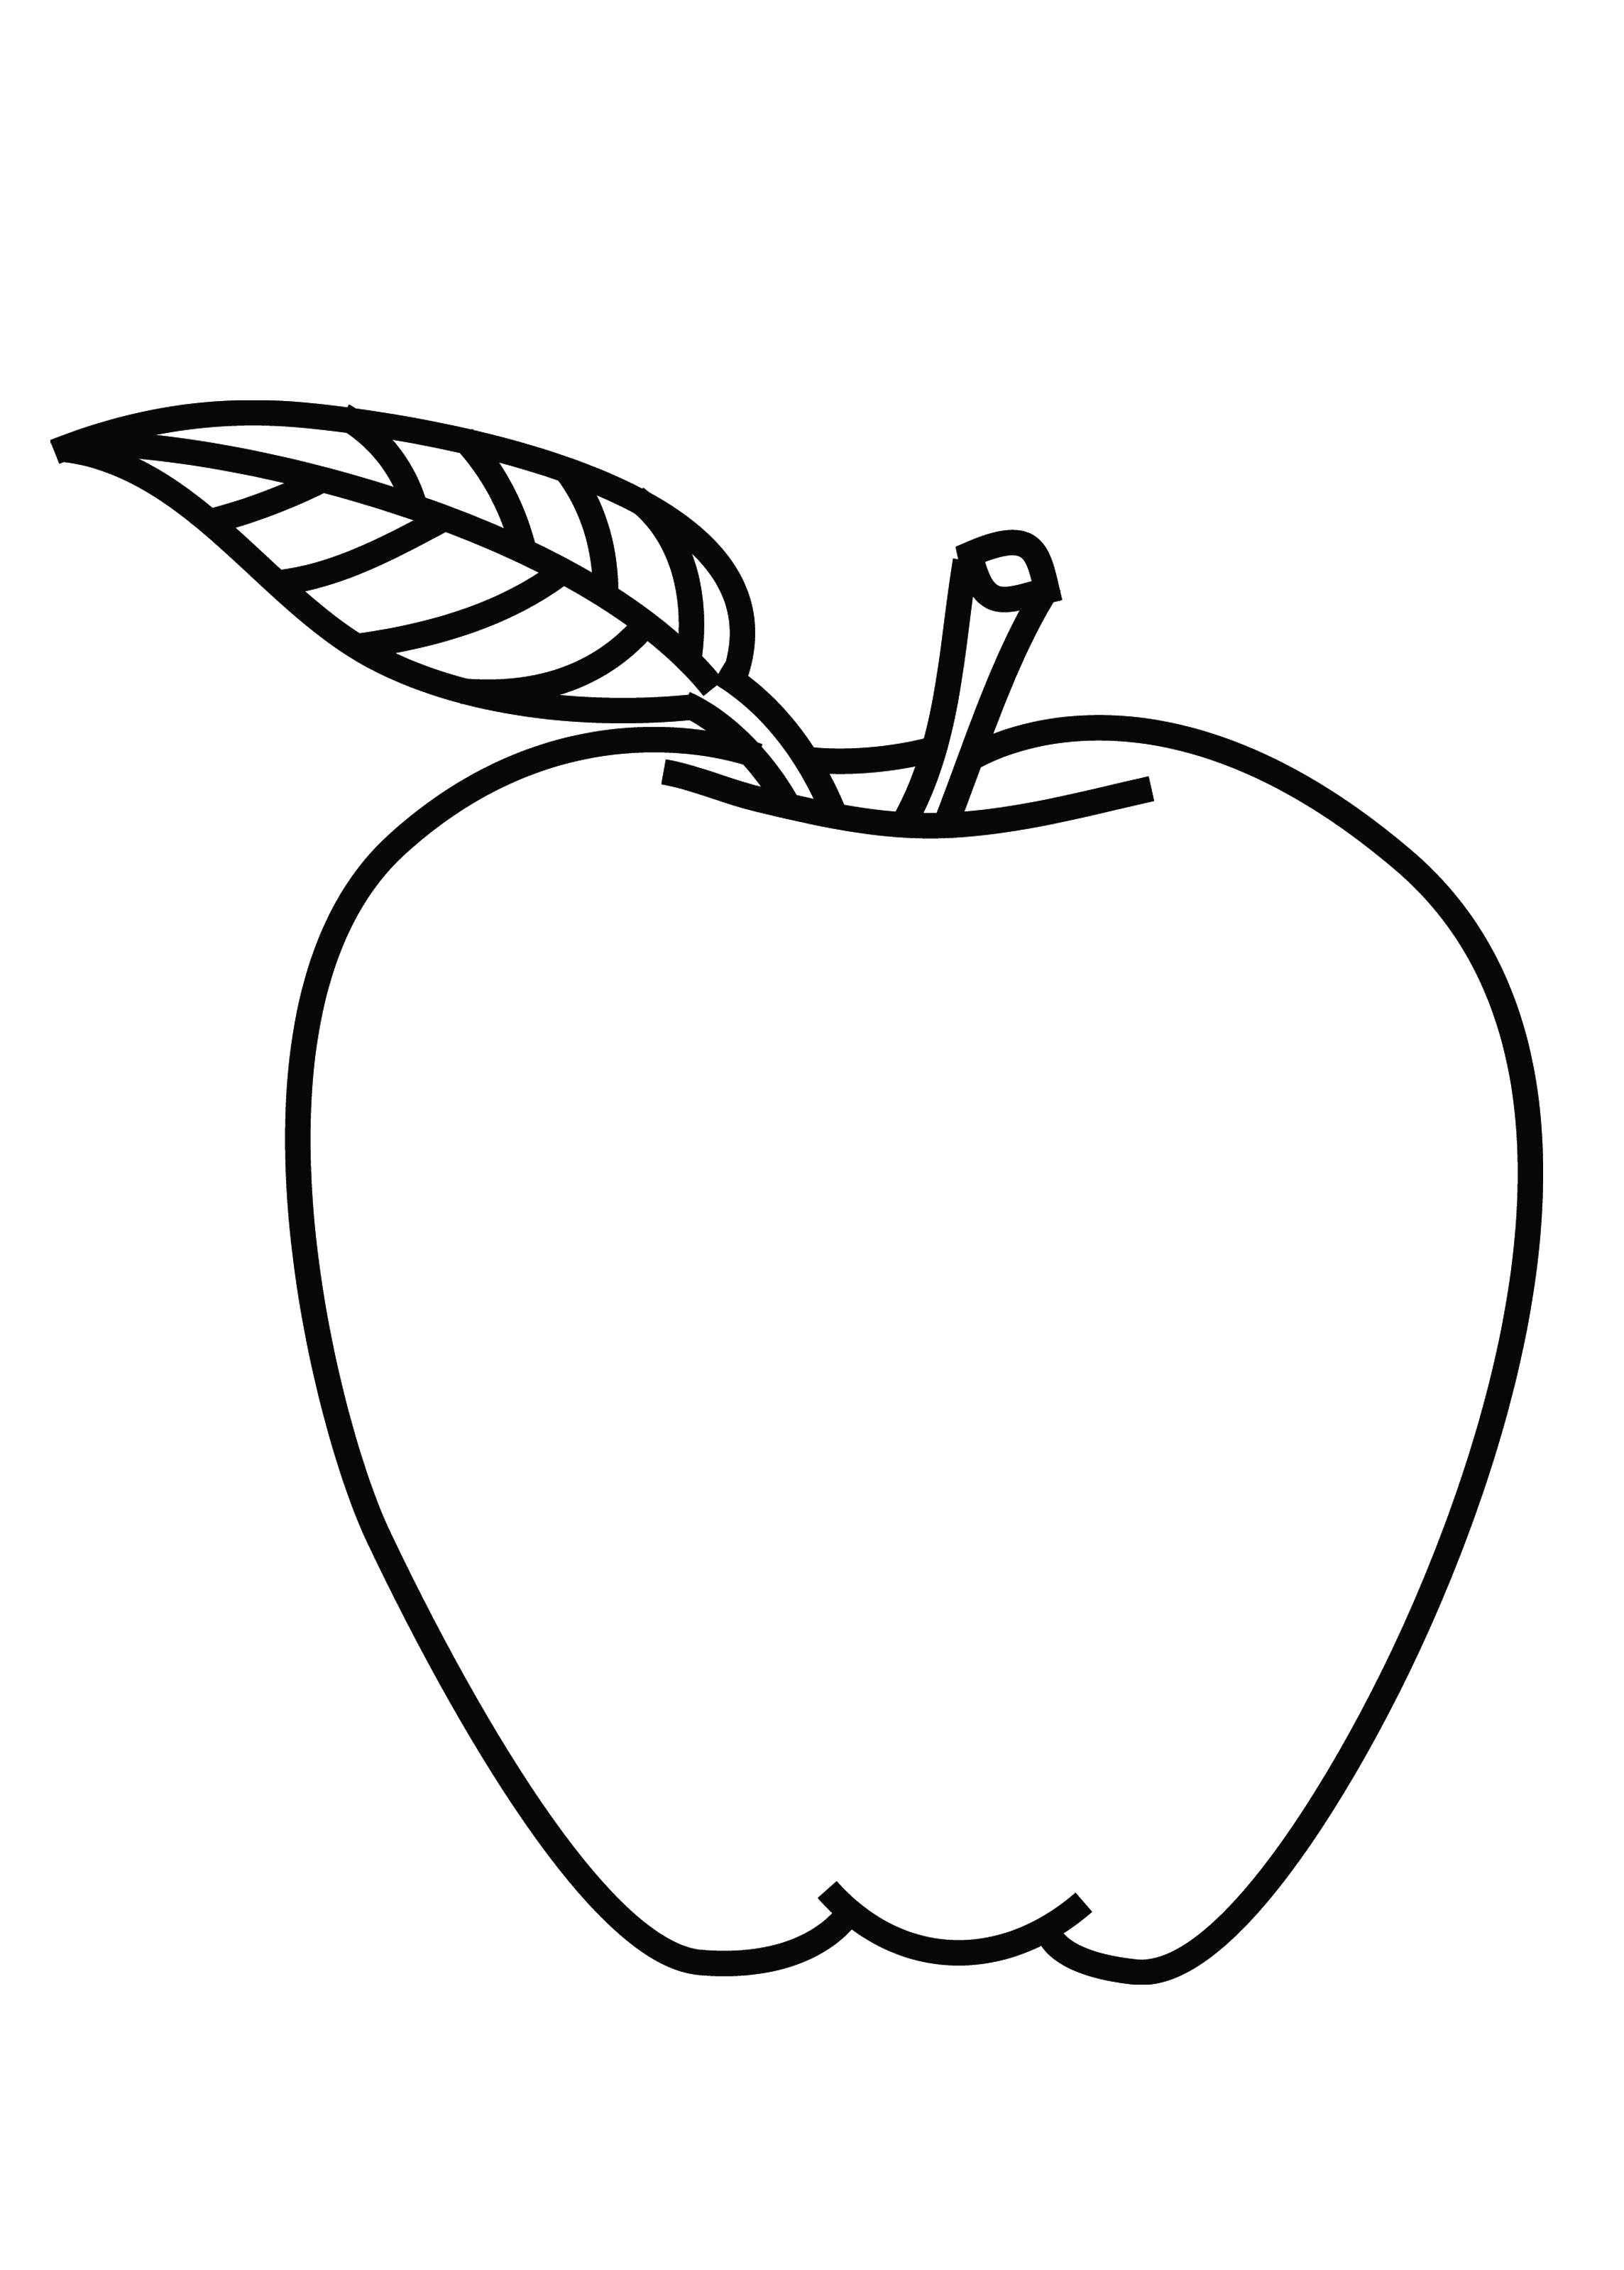 coloring candy apples candy apple coloring pages 1 in 2020 apple coloring coloring candy apples